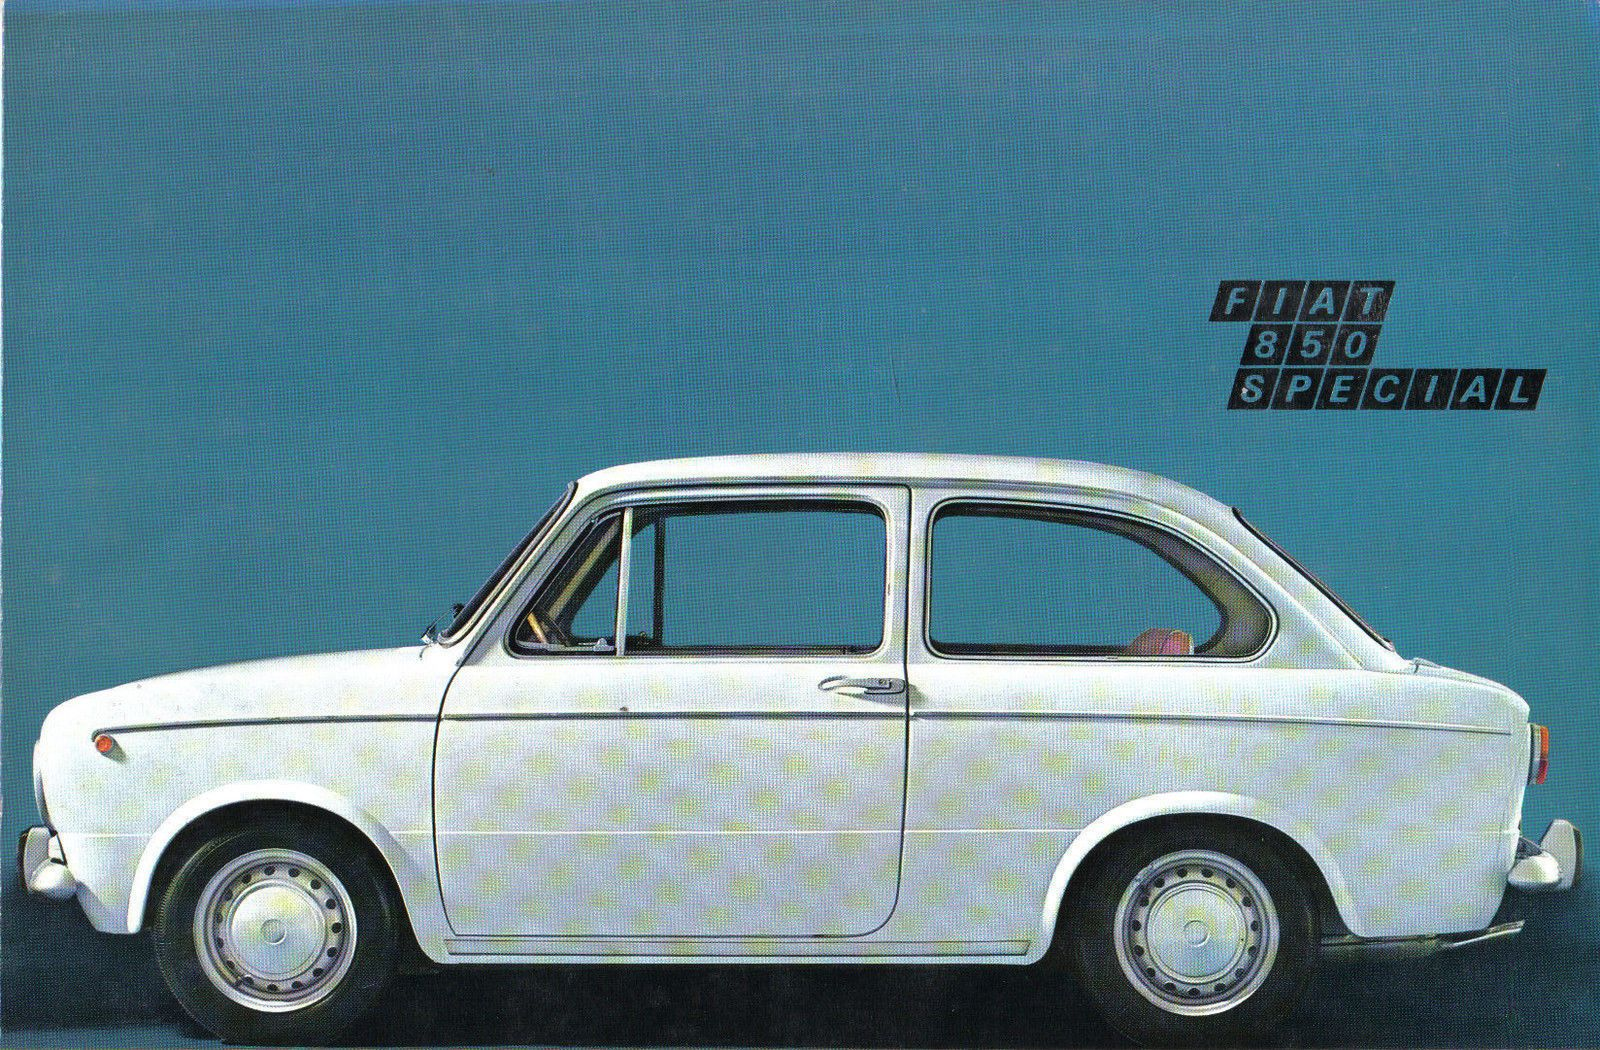 Details About Fiat 850 Special 1968 71 Original Uk Sales Brochure